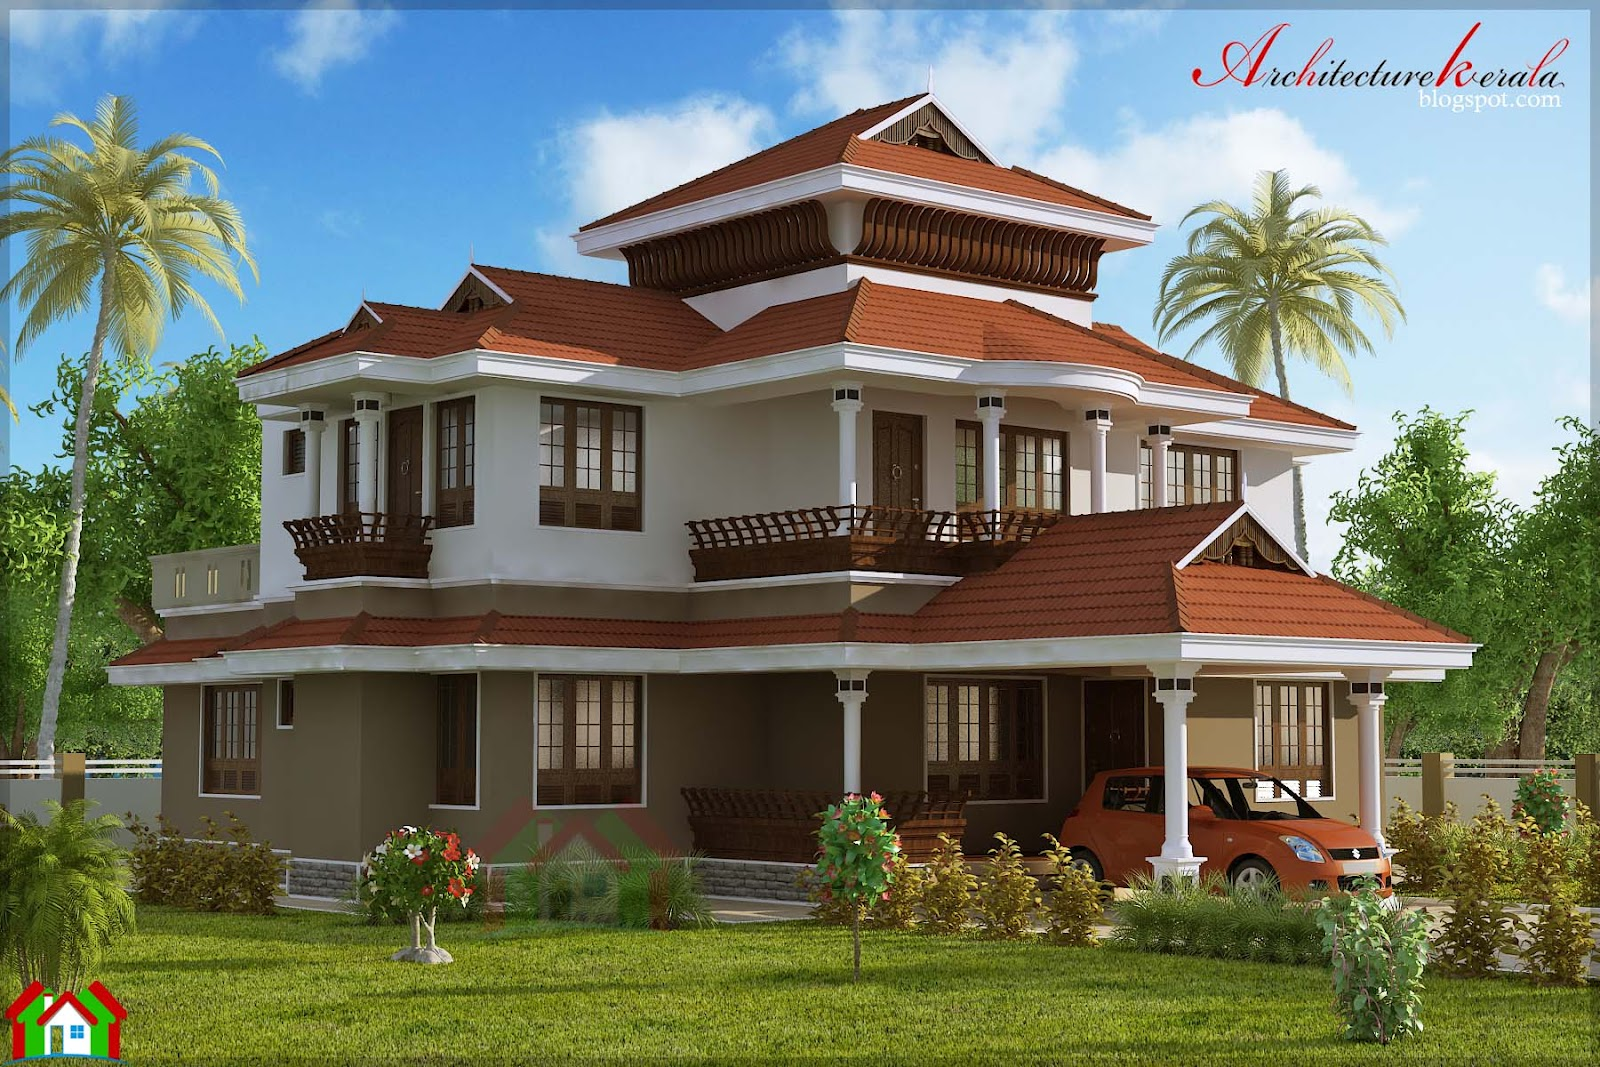 Architecture kerala 4 bed room traditional style house for Traditional style house